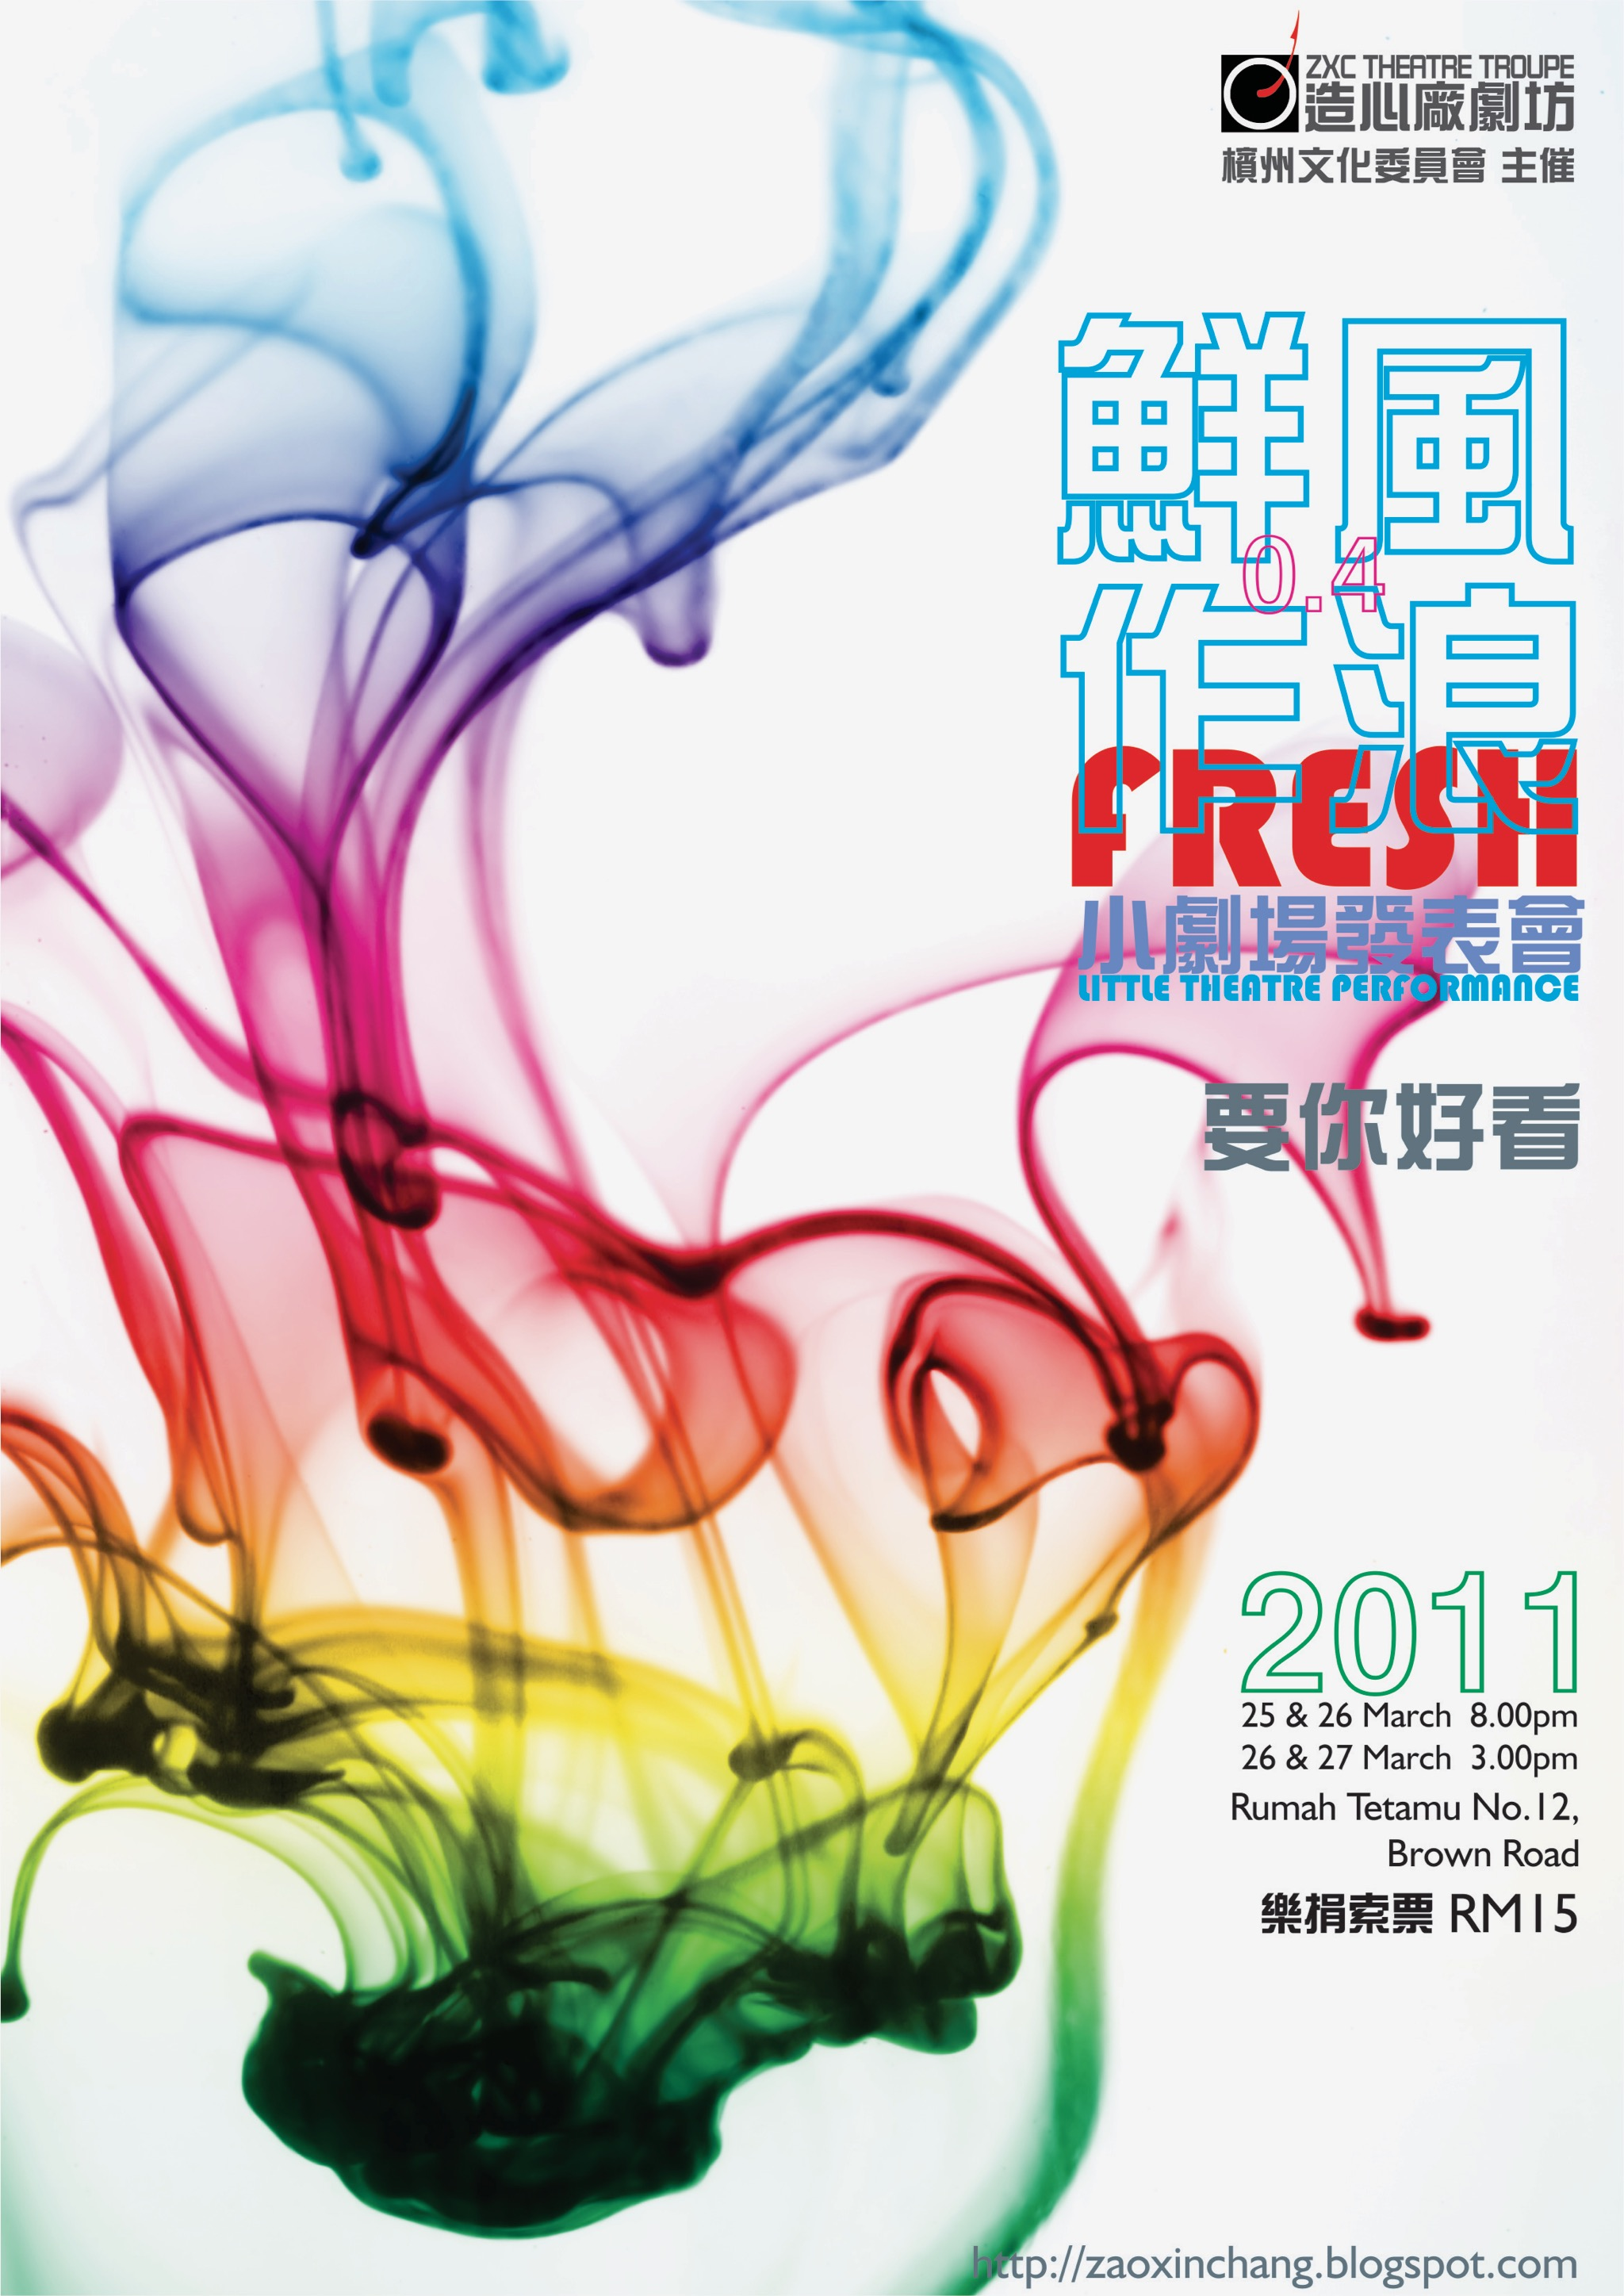 2011 Fresh Little Theatre Performance Poster